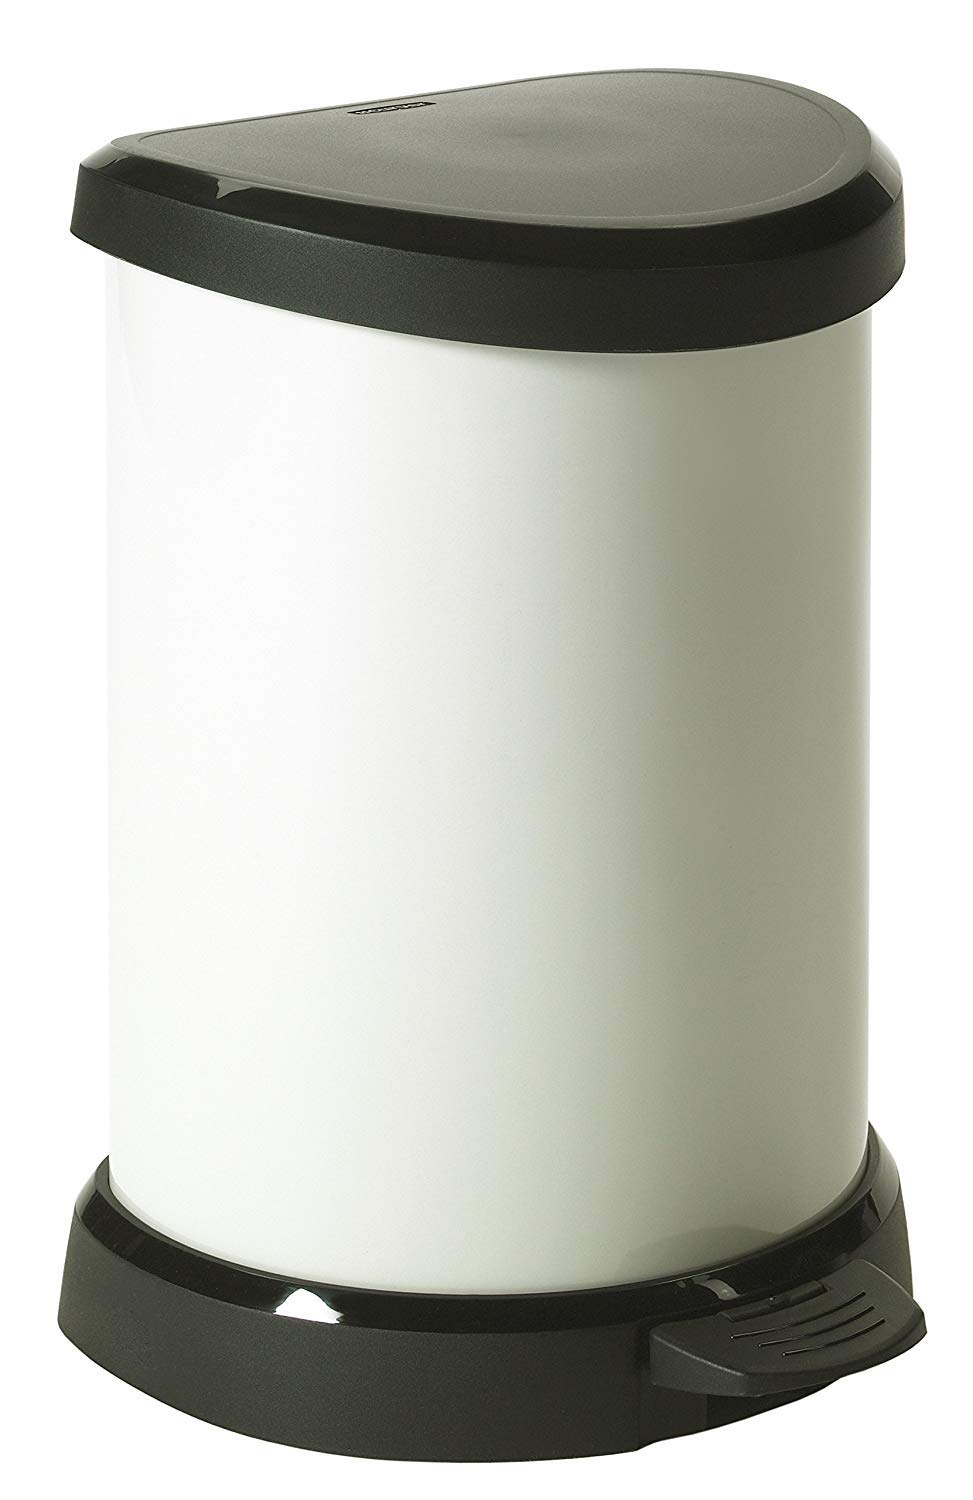 CURVER - Cubo de basura decorativo con pedal, 20 l, color crema: Amazon.es: Hogar